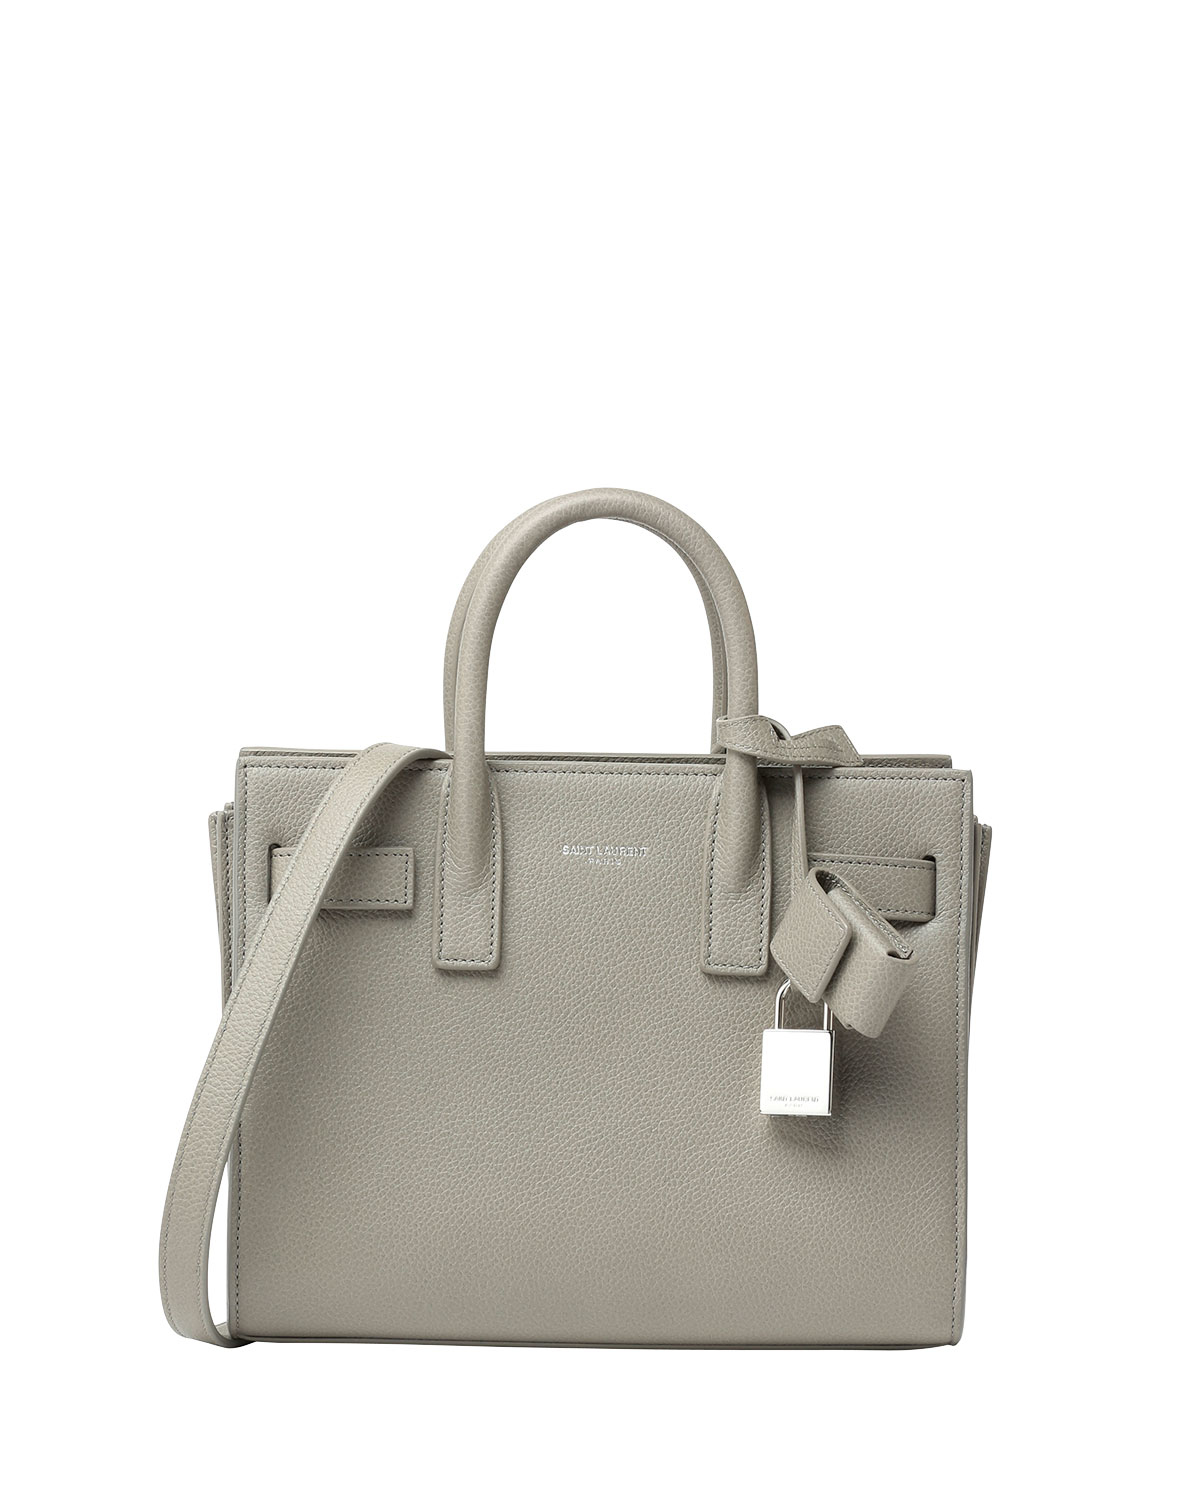 saint laurent sac de jour small grain leather tote bag in gray lyst. Black Bedroom Furniture Sets. Home Design Ideas